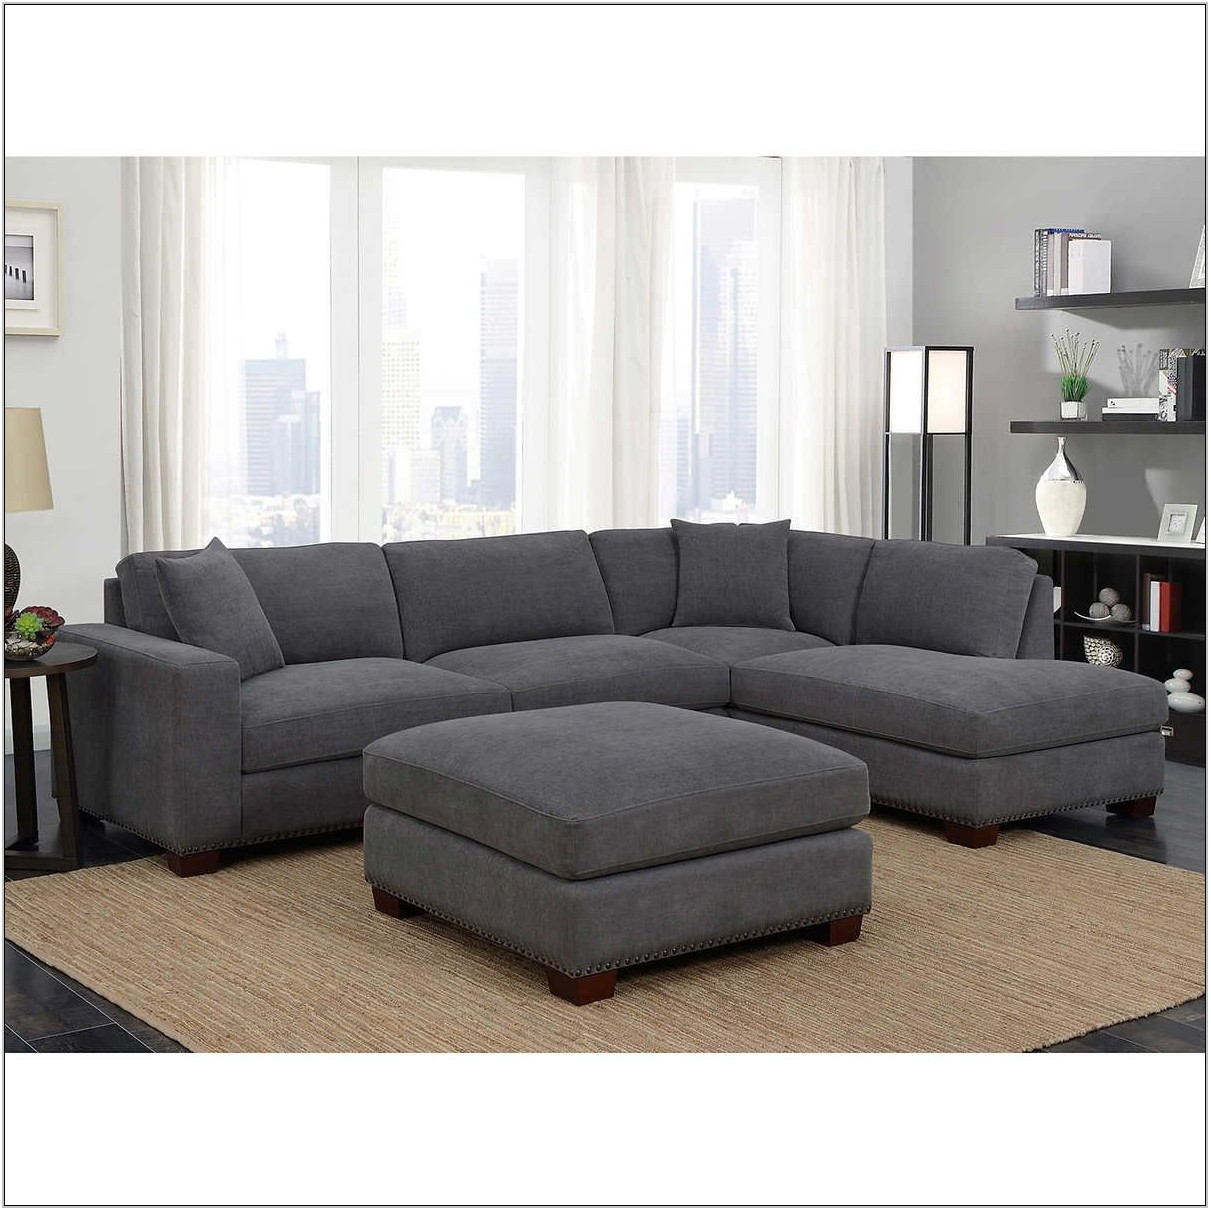 Overstock Living Room Sets